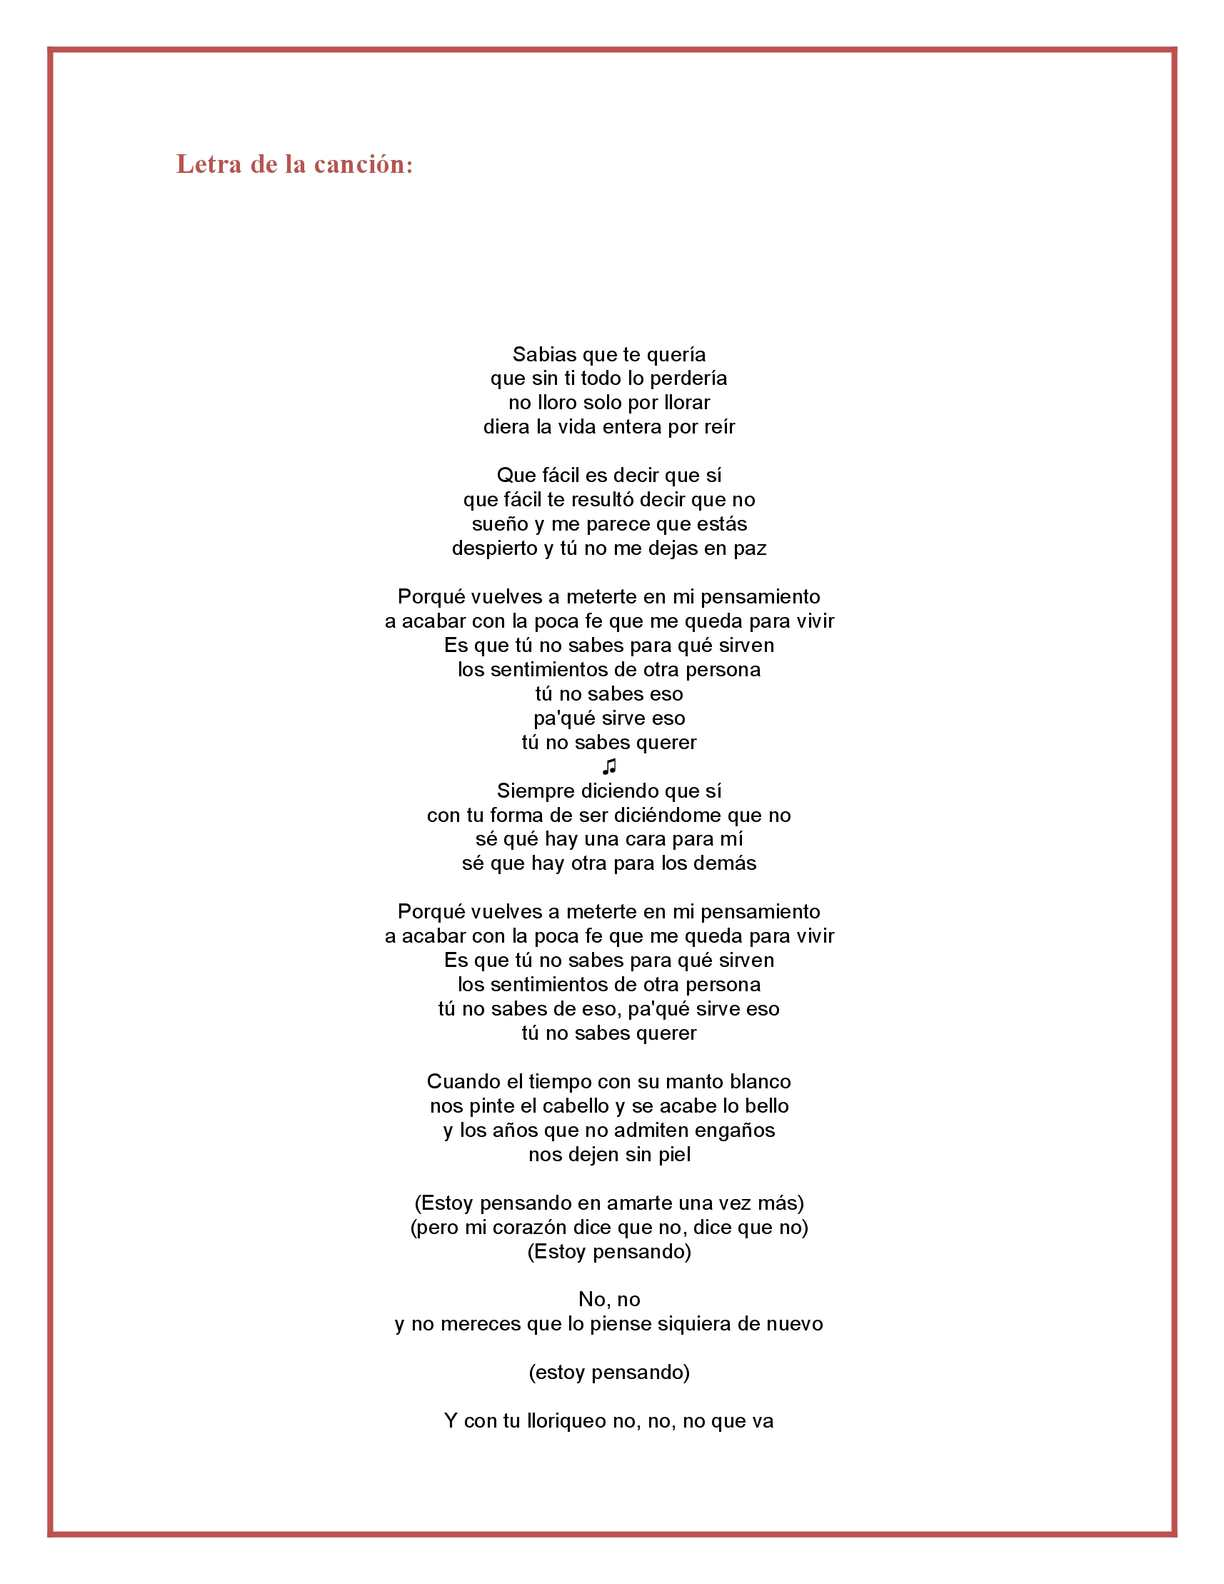 Letra de la cancion de desnuda picture 34